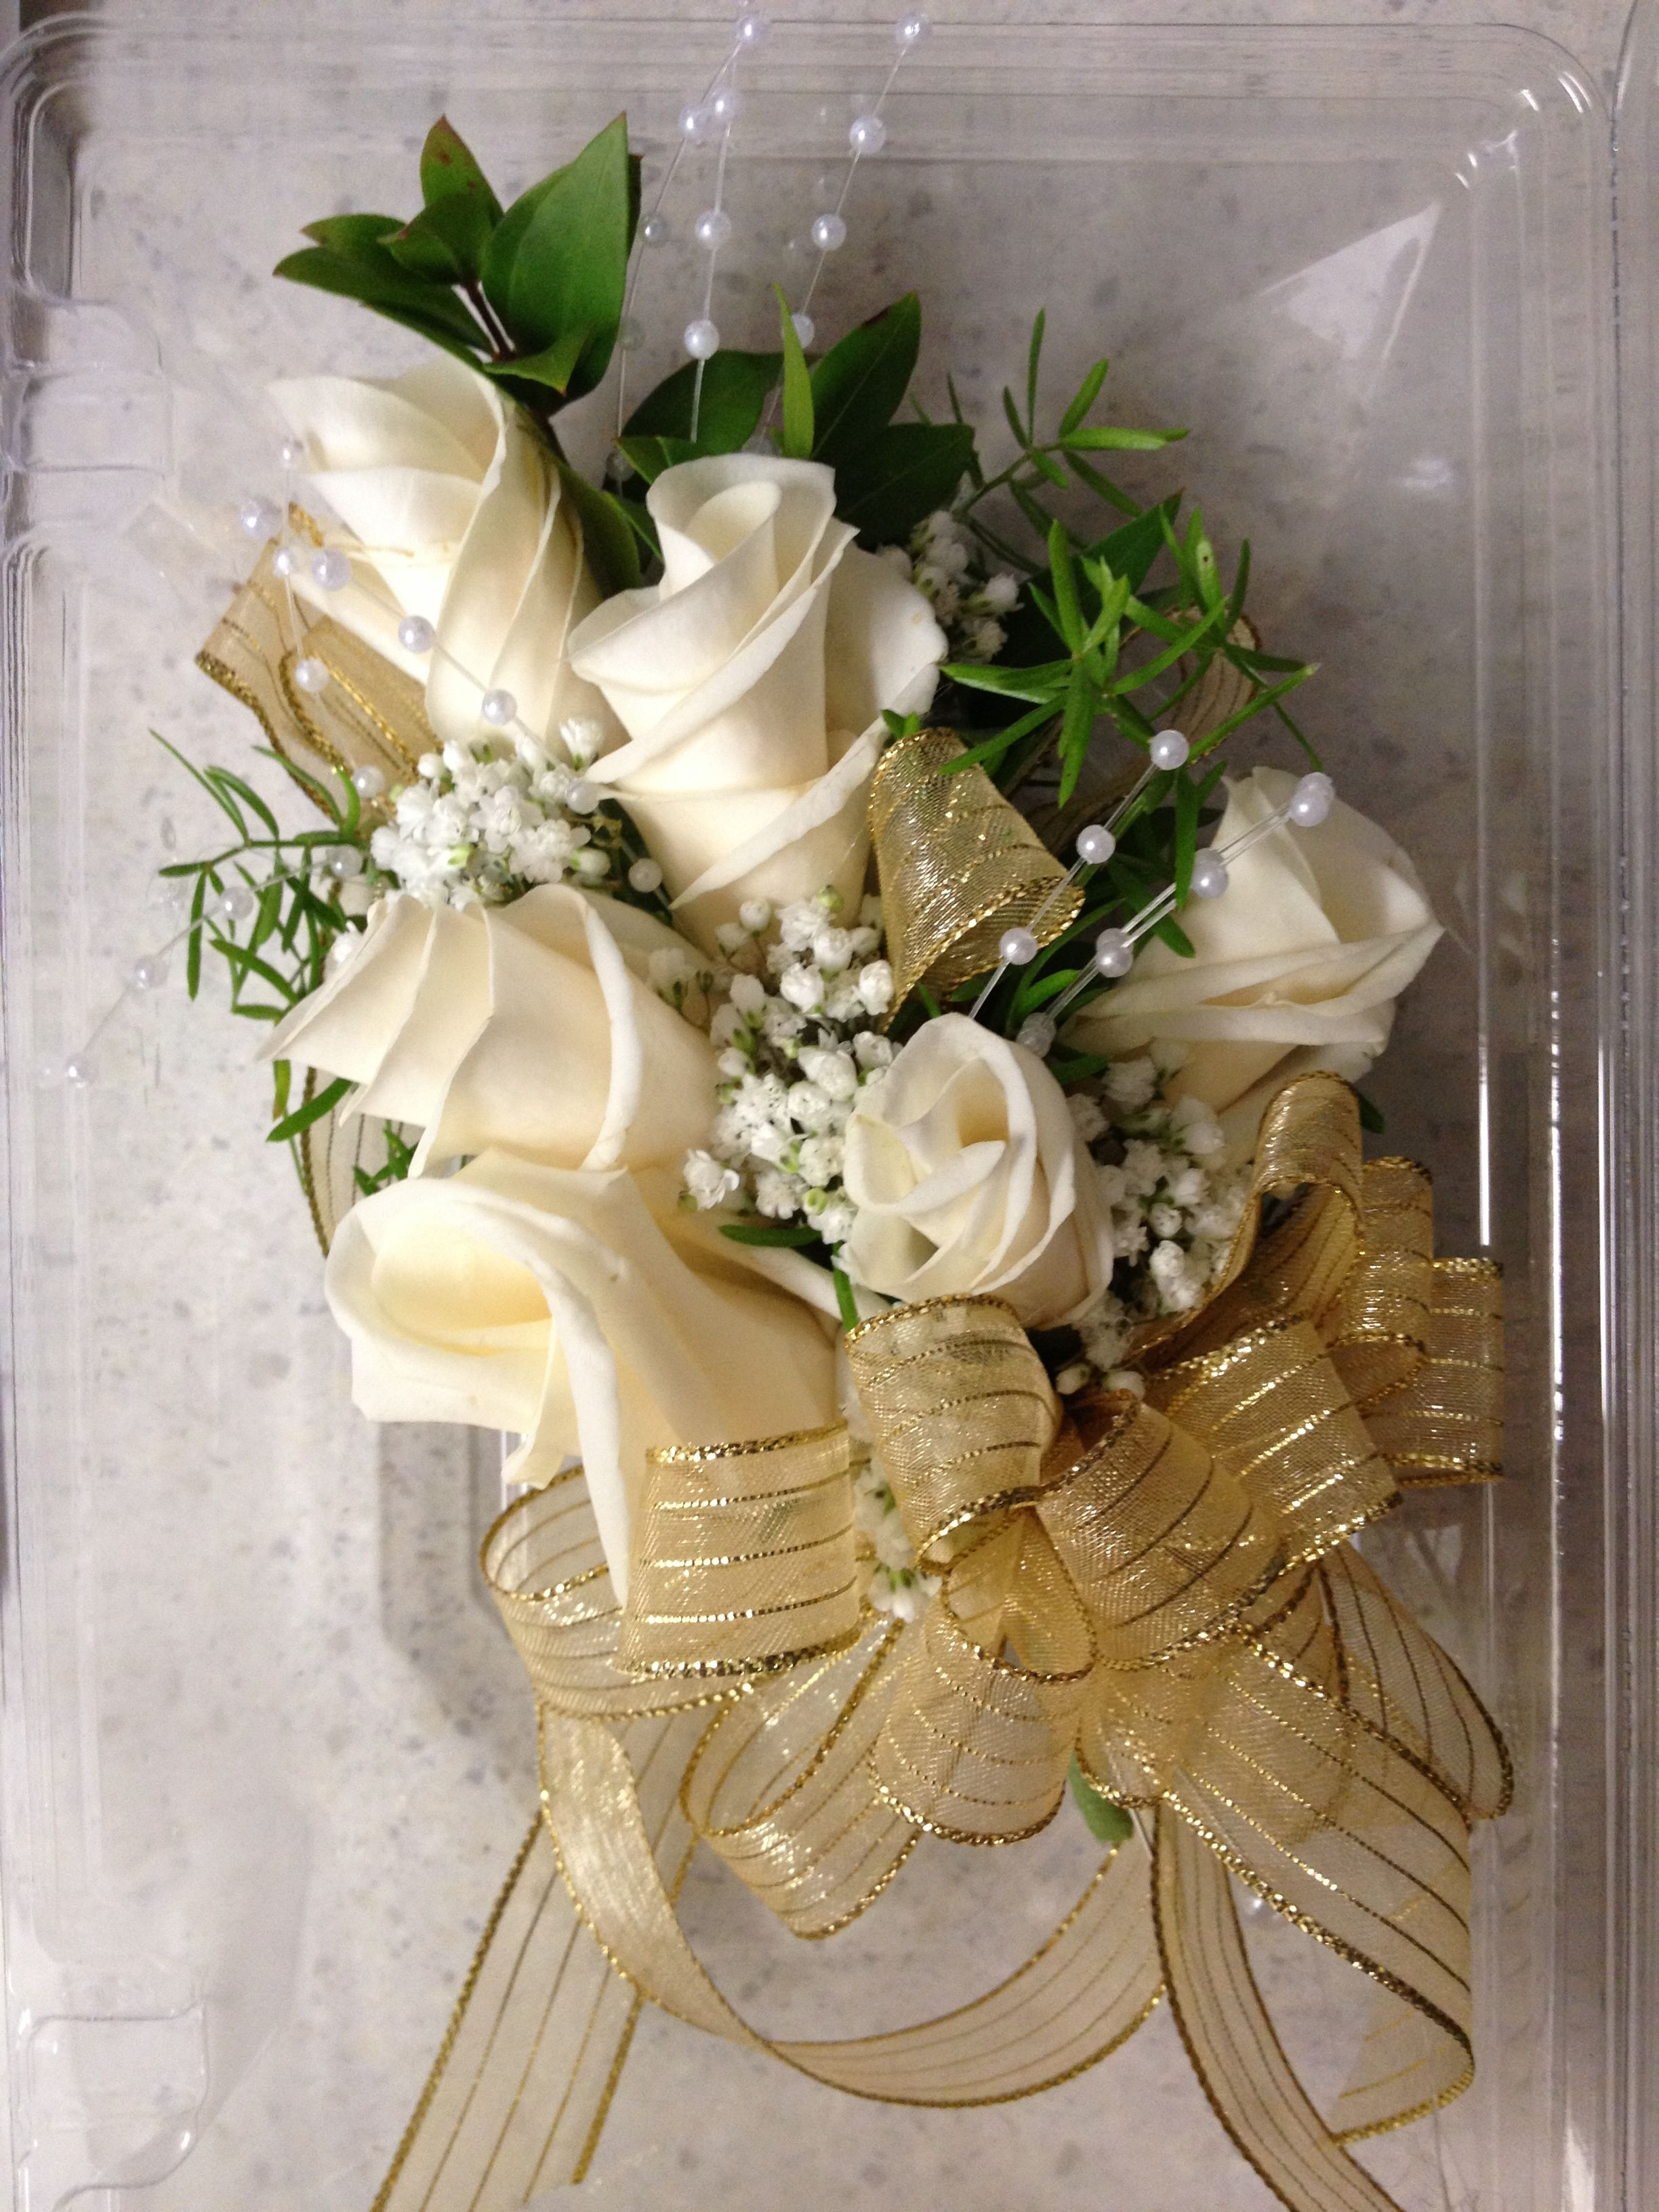 Golden Roses Gold Rose Corsage Mother/'s Day Corsage Sparkly Corsage Prom Flowers Christmas Wedding Metallic Flowers